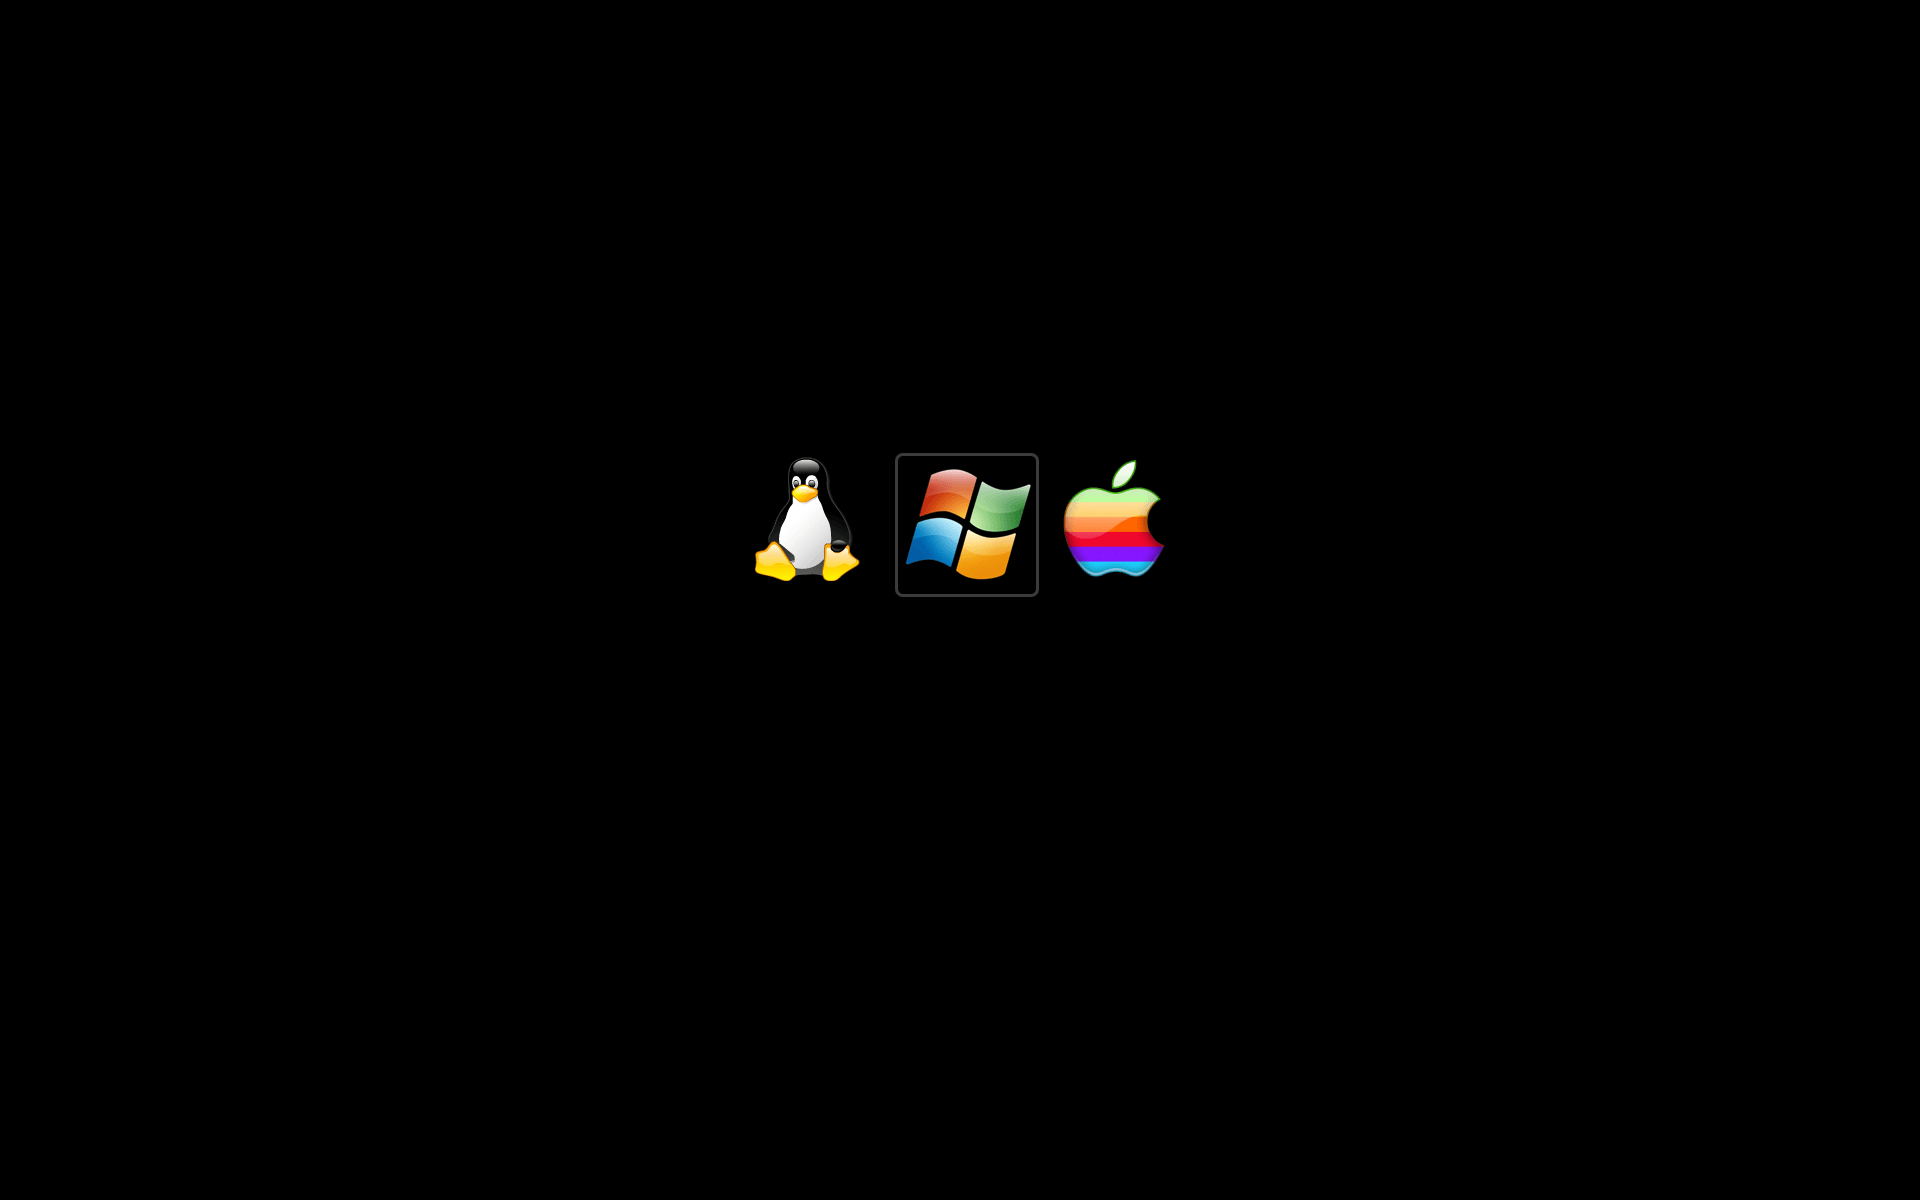 Image For > Mac Wallpapers For Windows